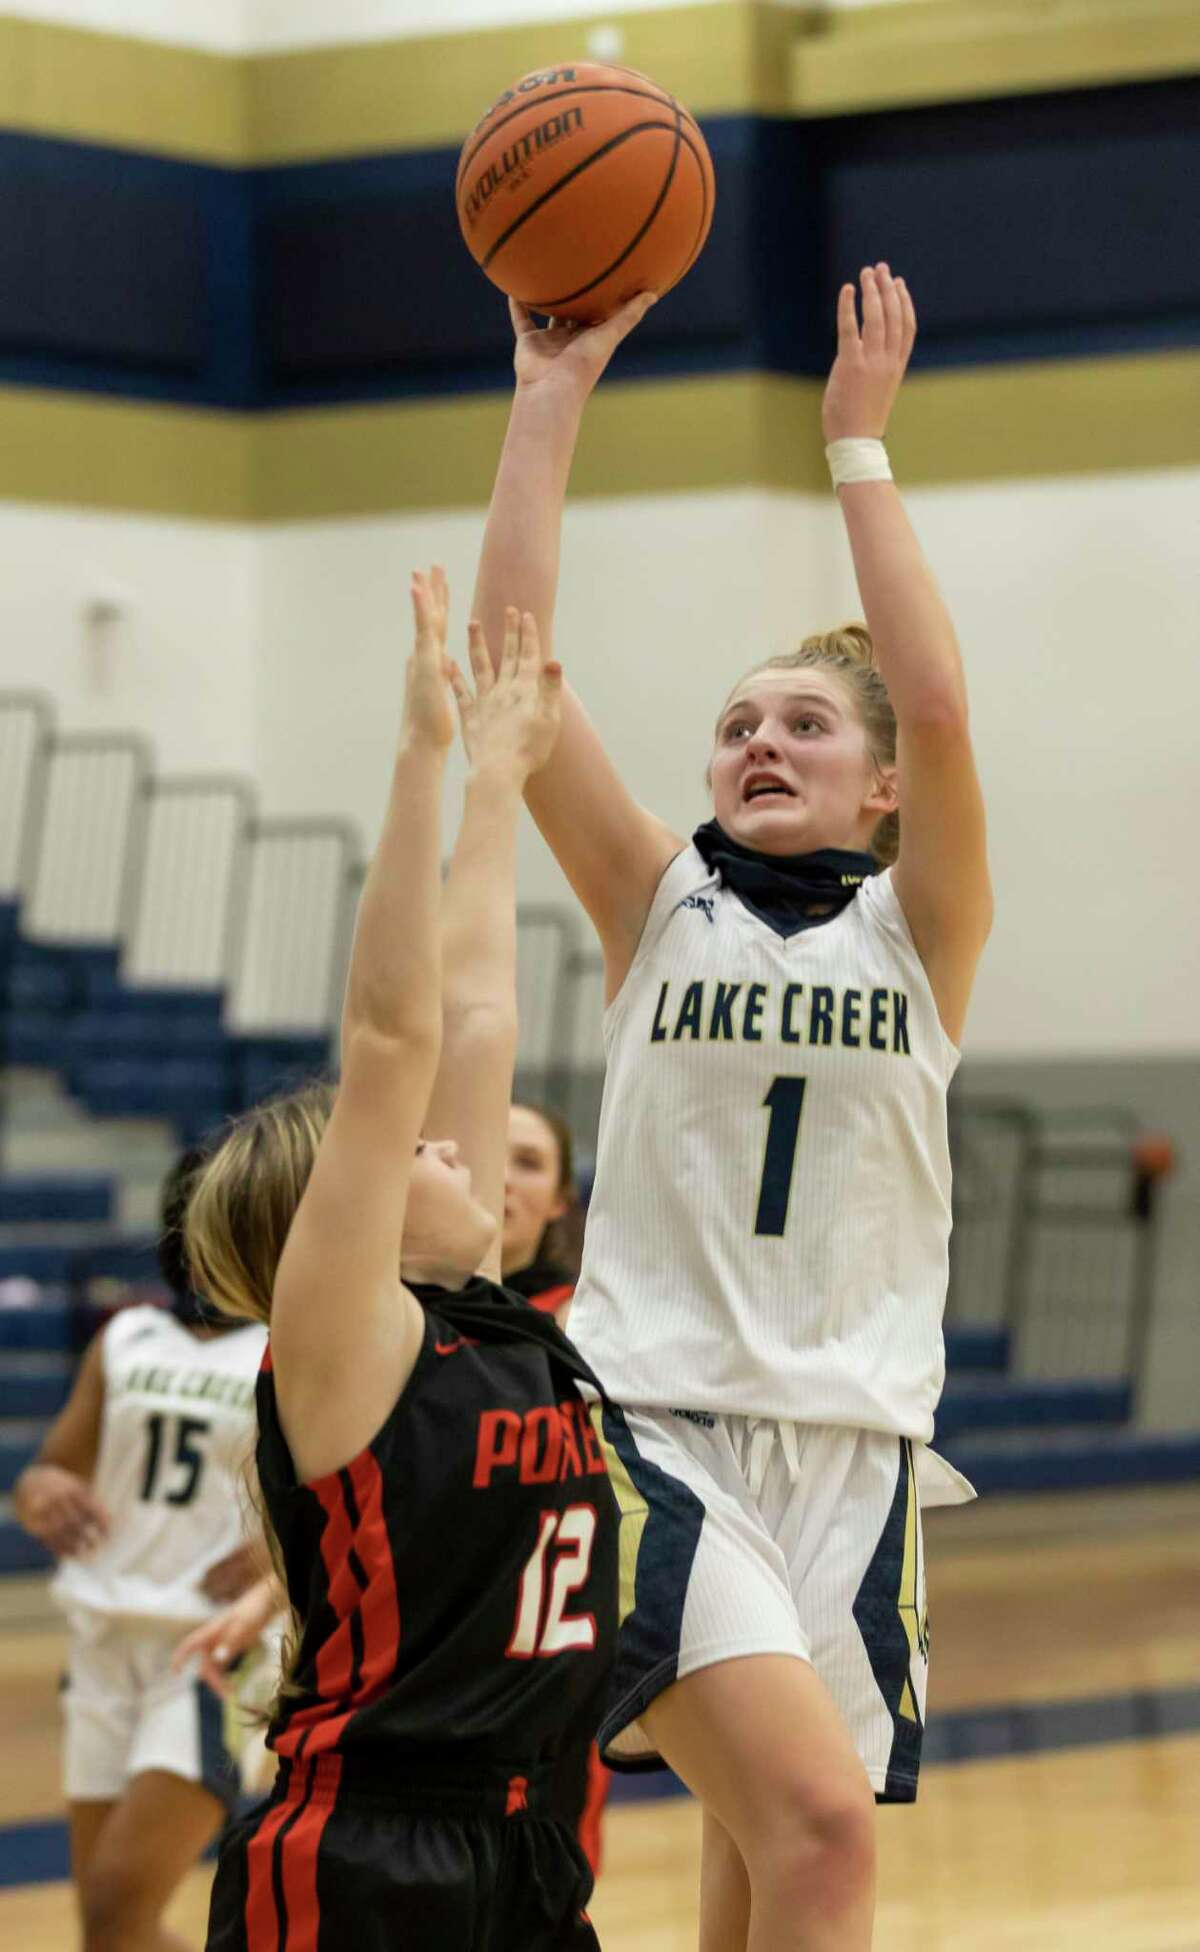 Lake Creek's Makenzie Logeman (1) catches a pass from the sideline while under pressure from Porter's Allie Seybert (12) during the first quarter of a District 20-5A girls basketball game at Lake Creek High School, Tuesday, Jan. 5, 2021, in Montgomery.